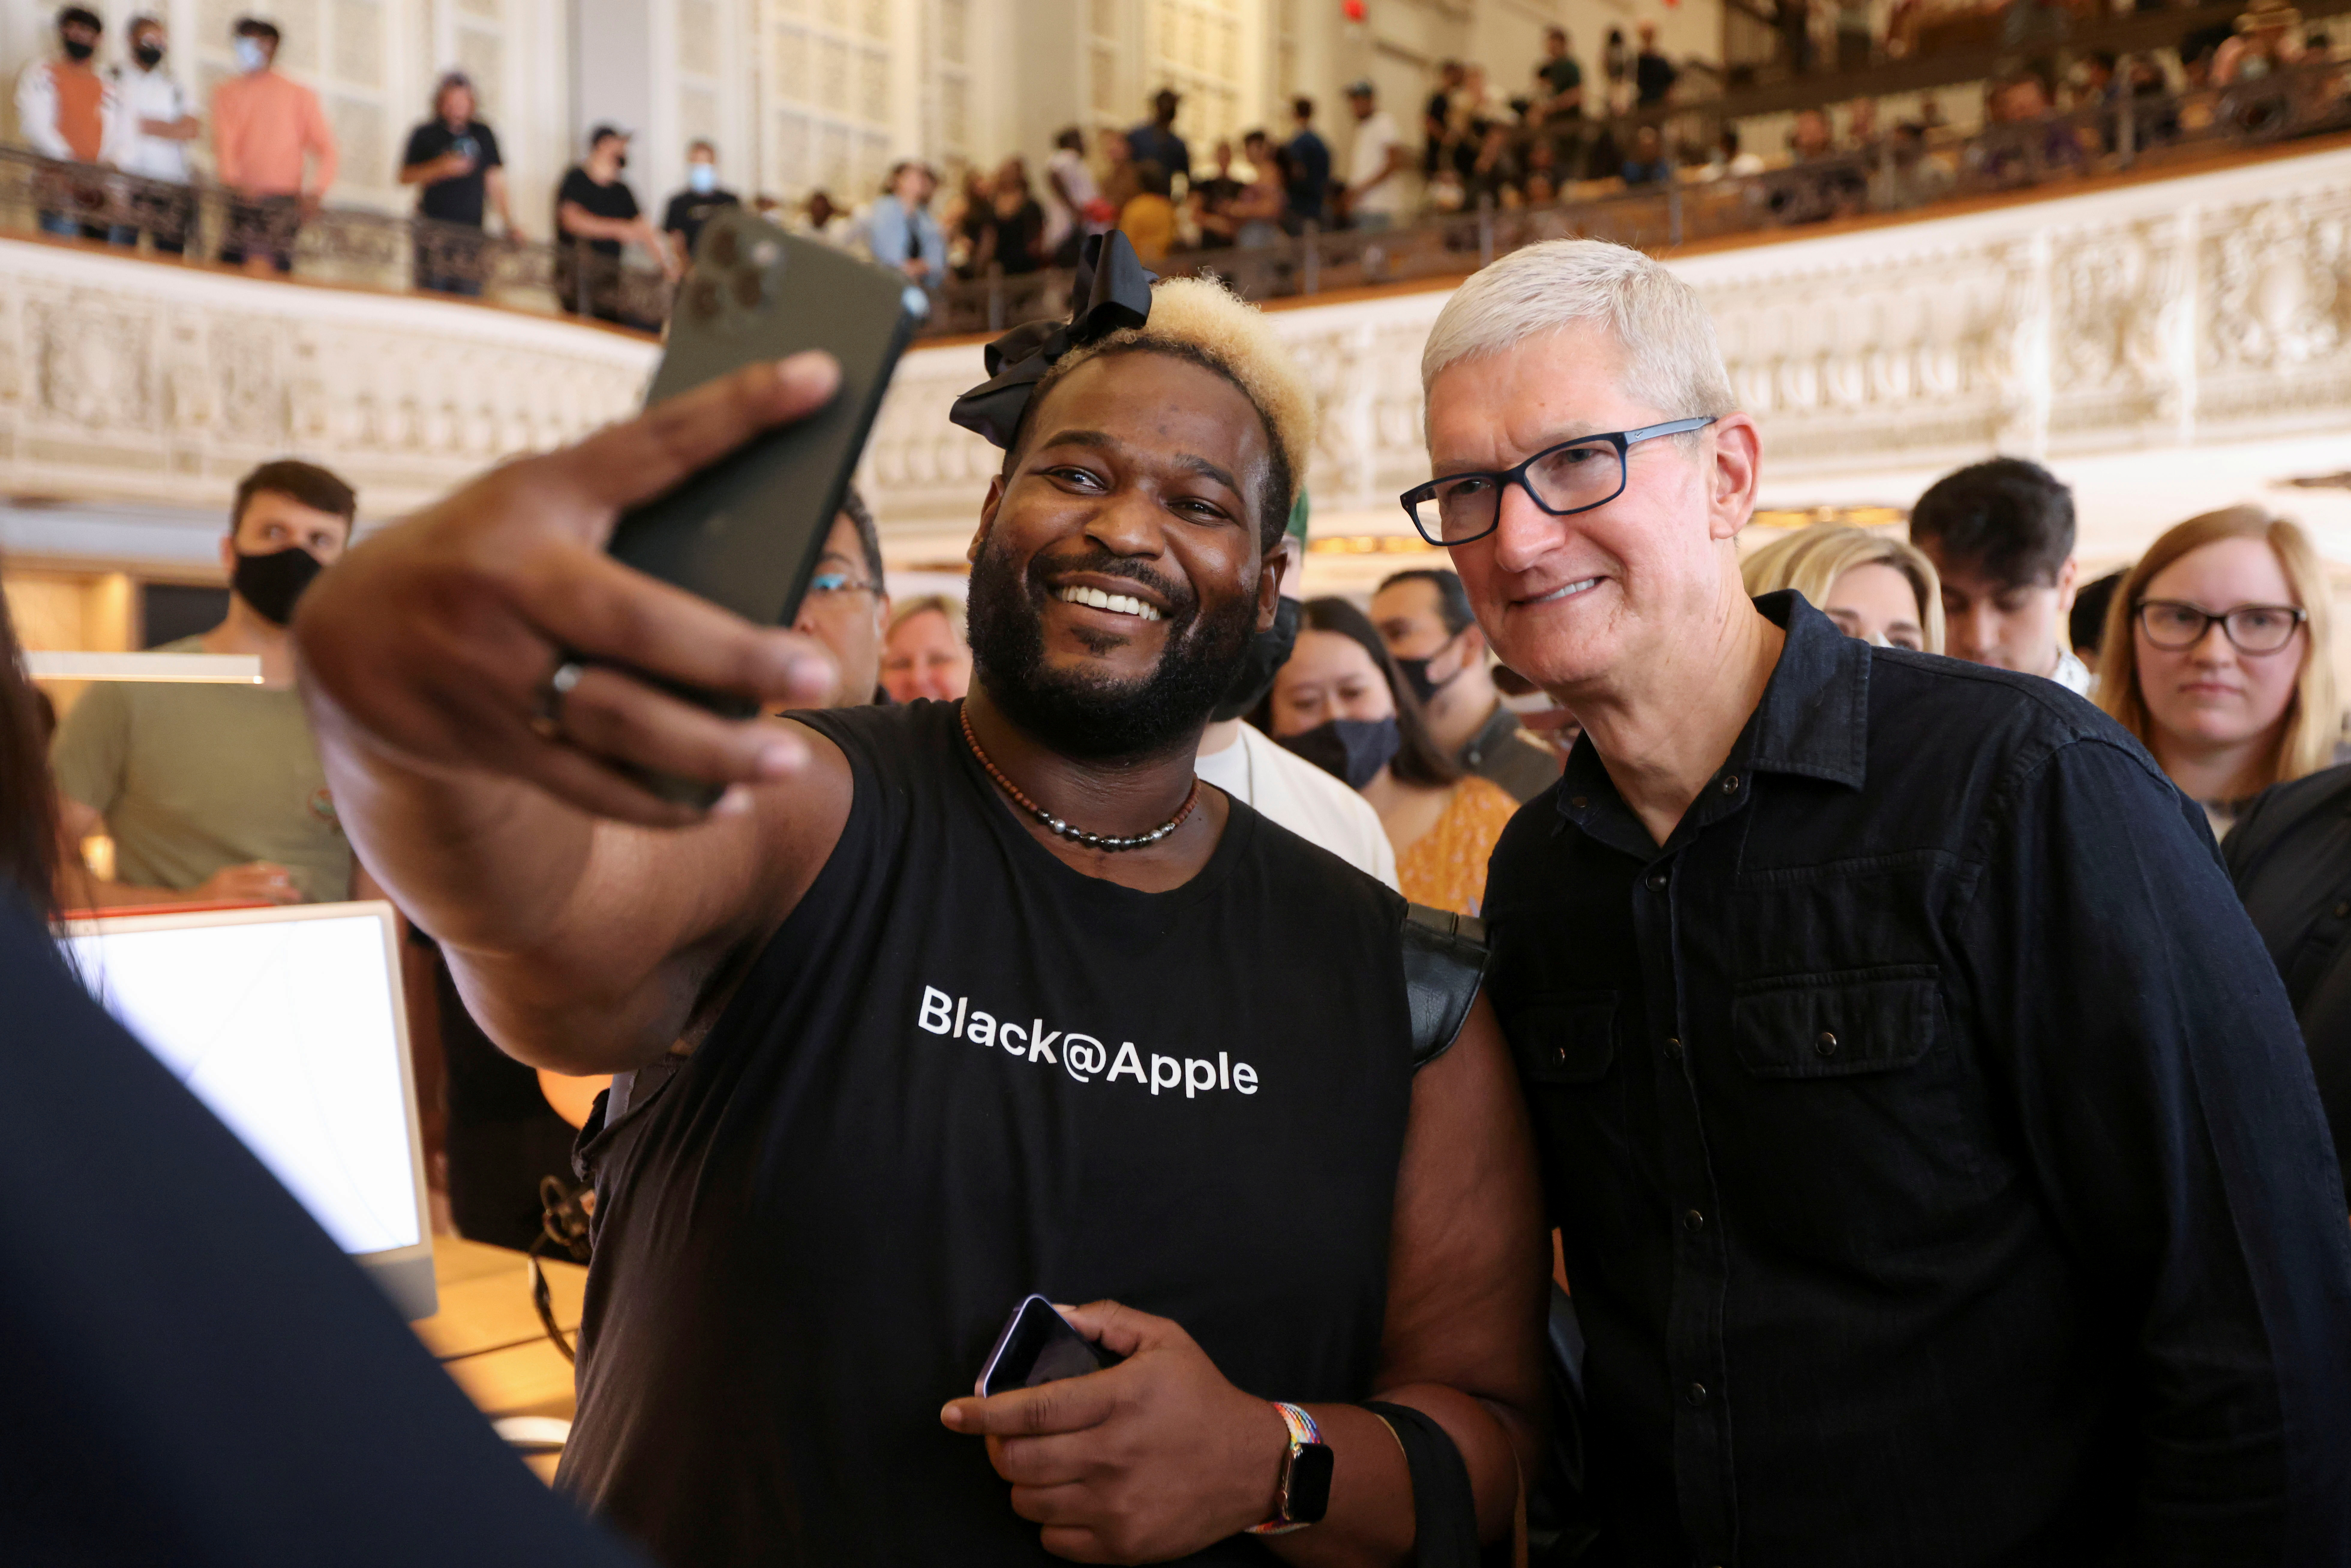 Apple CEO Tim Cook poses for a photo as he walks around the new Apple Store on Broadway in downtown Los Angeles, California, U.S., June 24. 2021. REUTERS/Lucy Nicholson